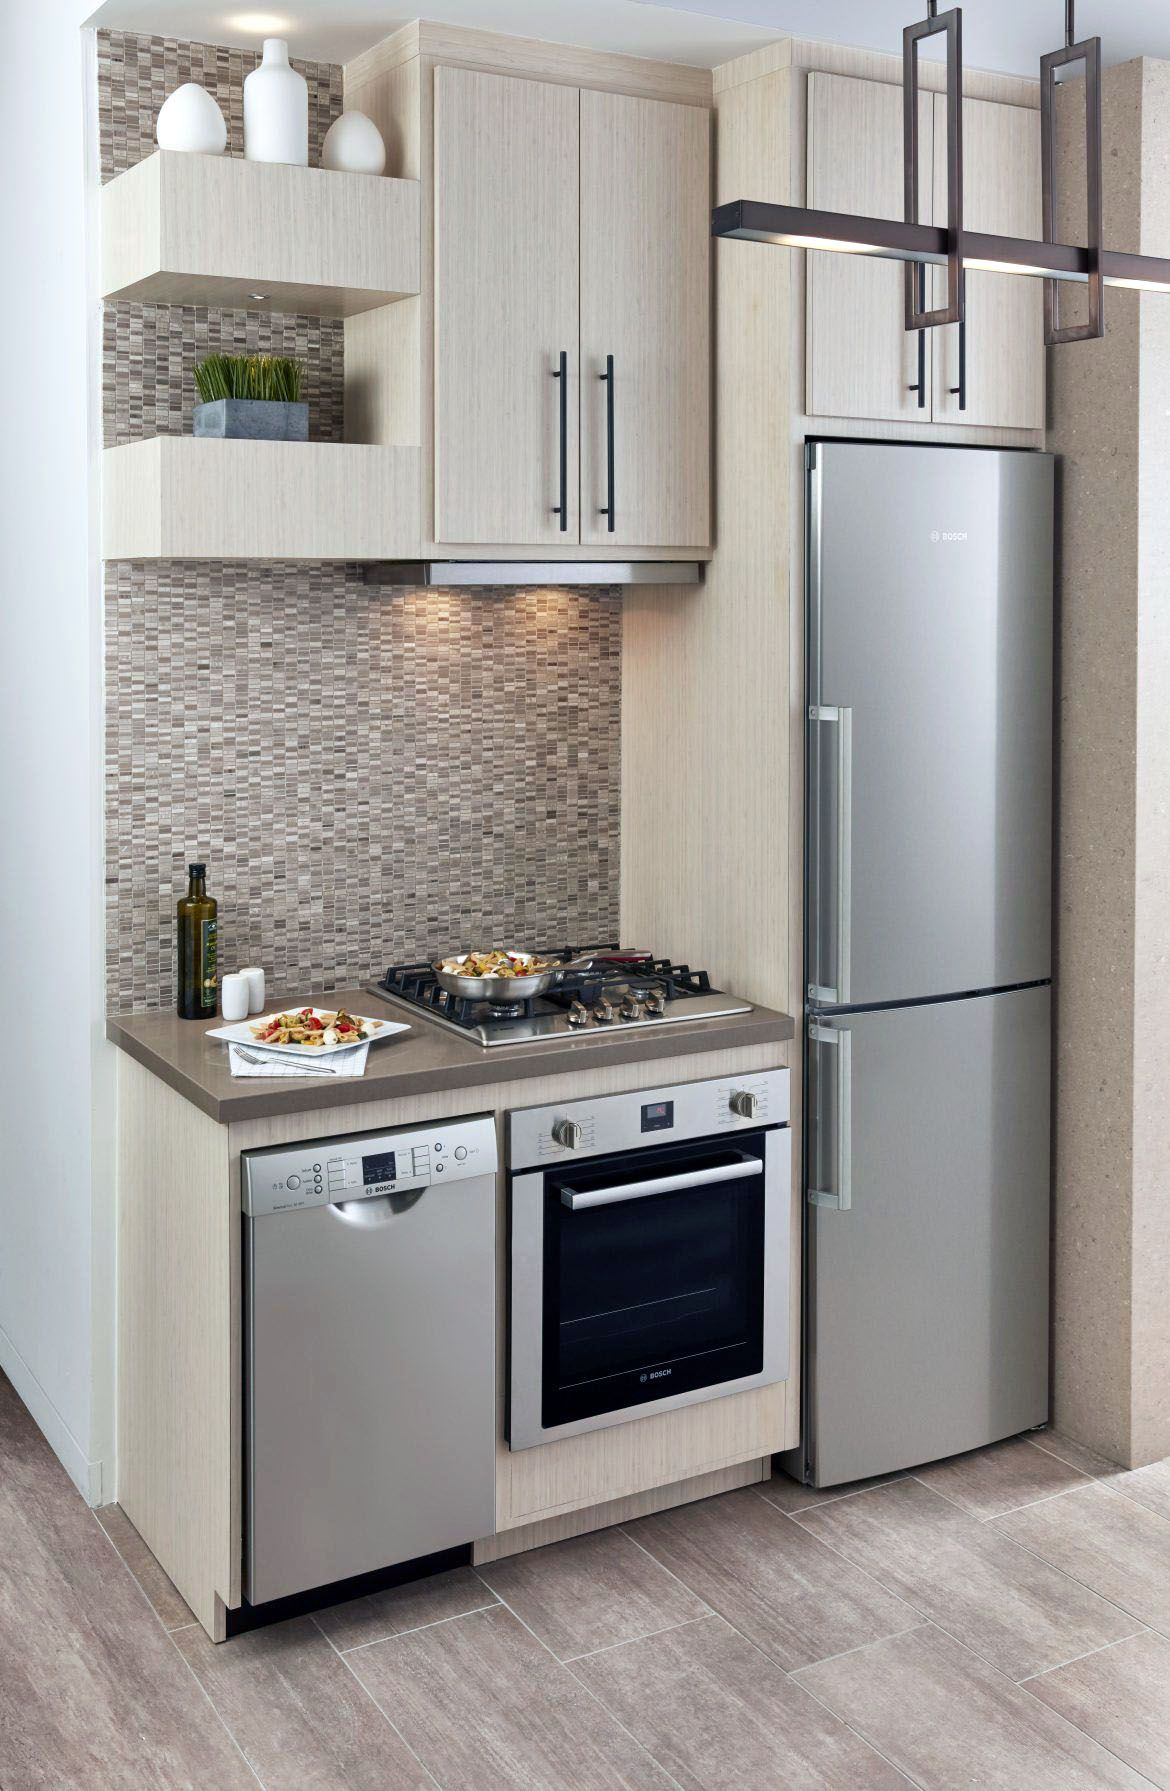 Smal Kitchen Ideas To Transform Your Portable Room Into A Smart Super Organised Space Kitchen Design Small House Design Kitchen Kitchen Appliances Design